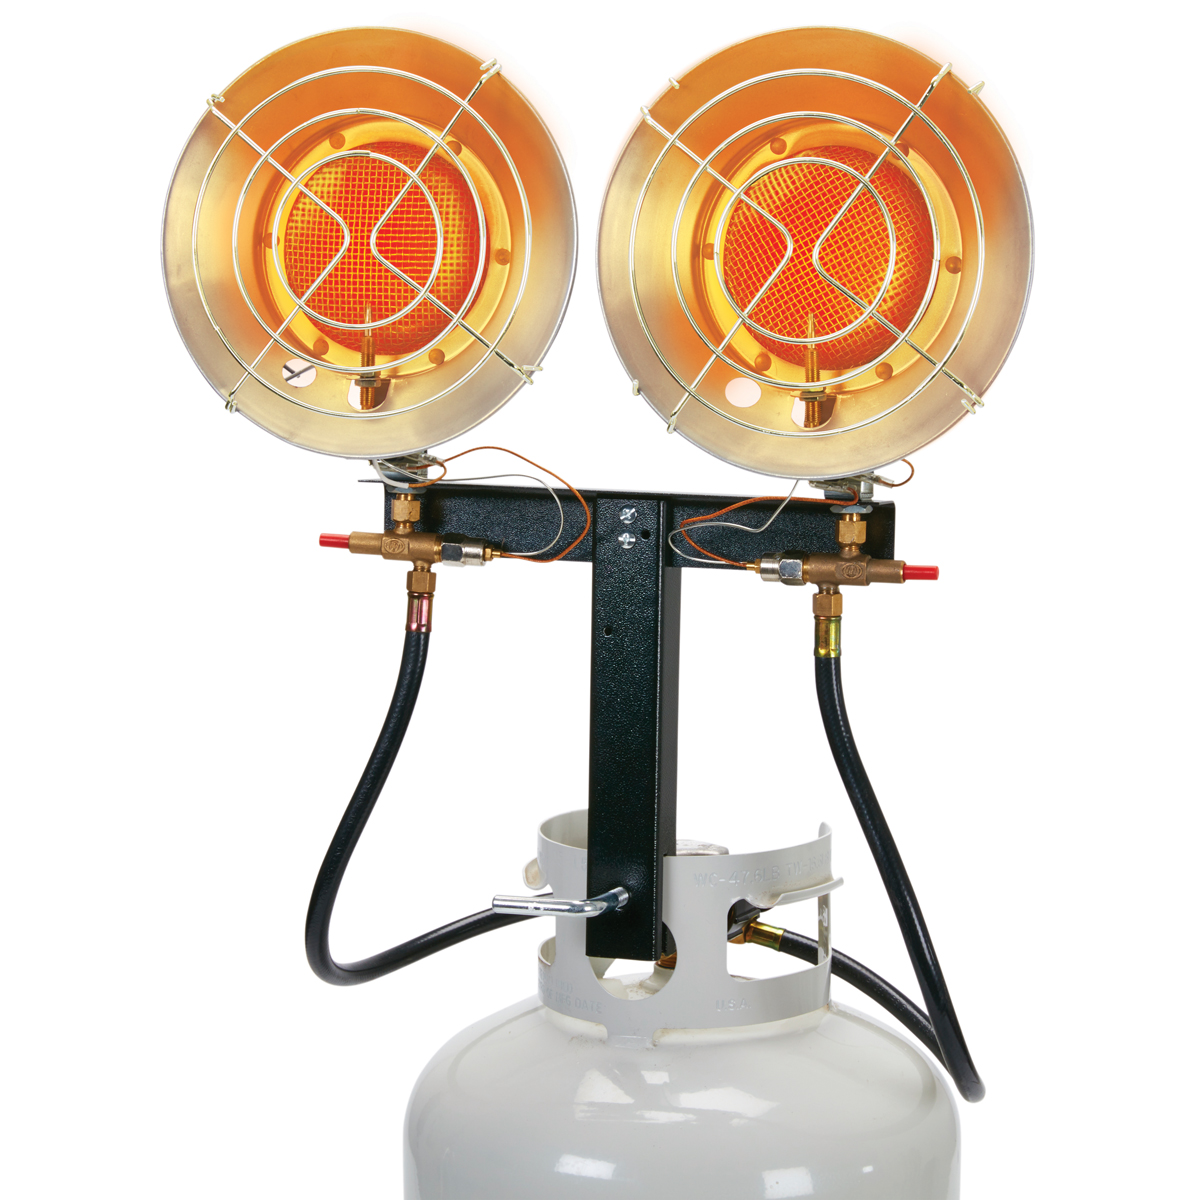 Propane Heater Harbor Freight Droughtrelief Org